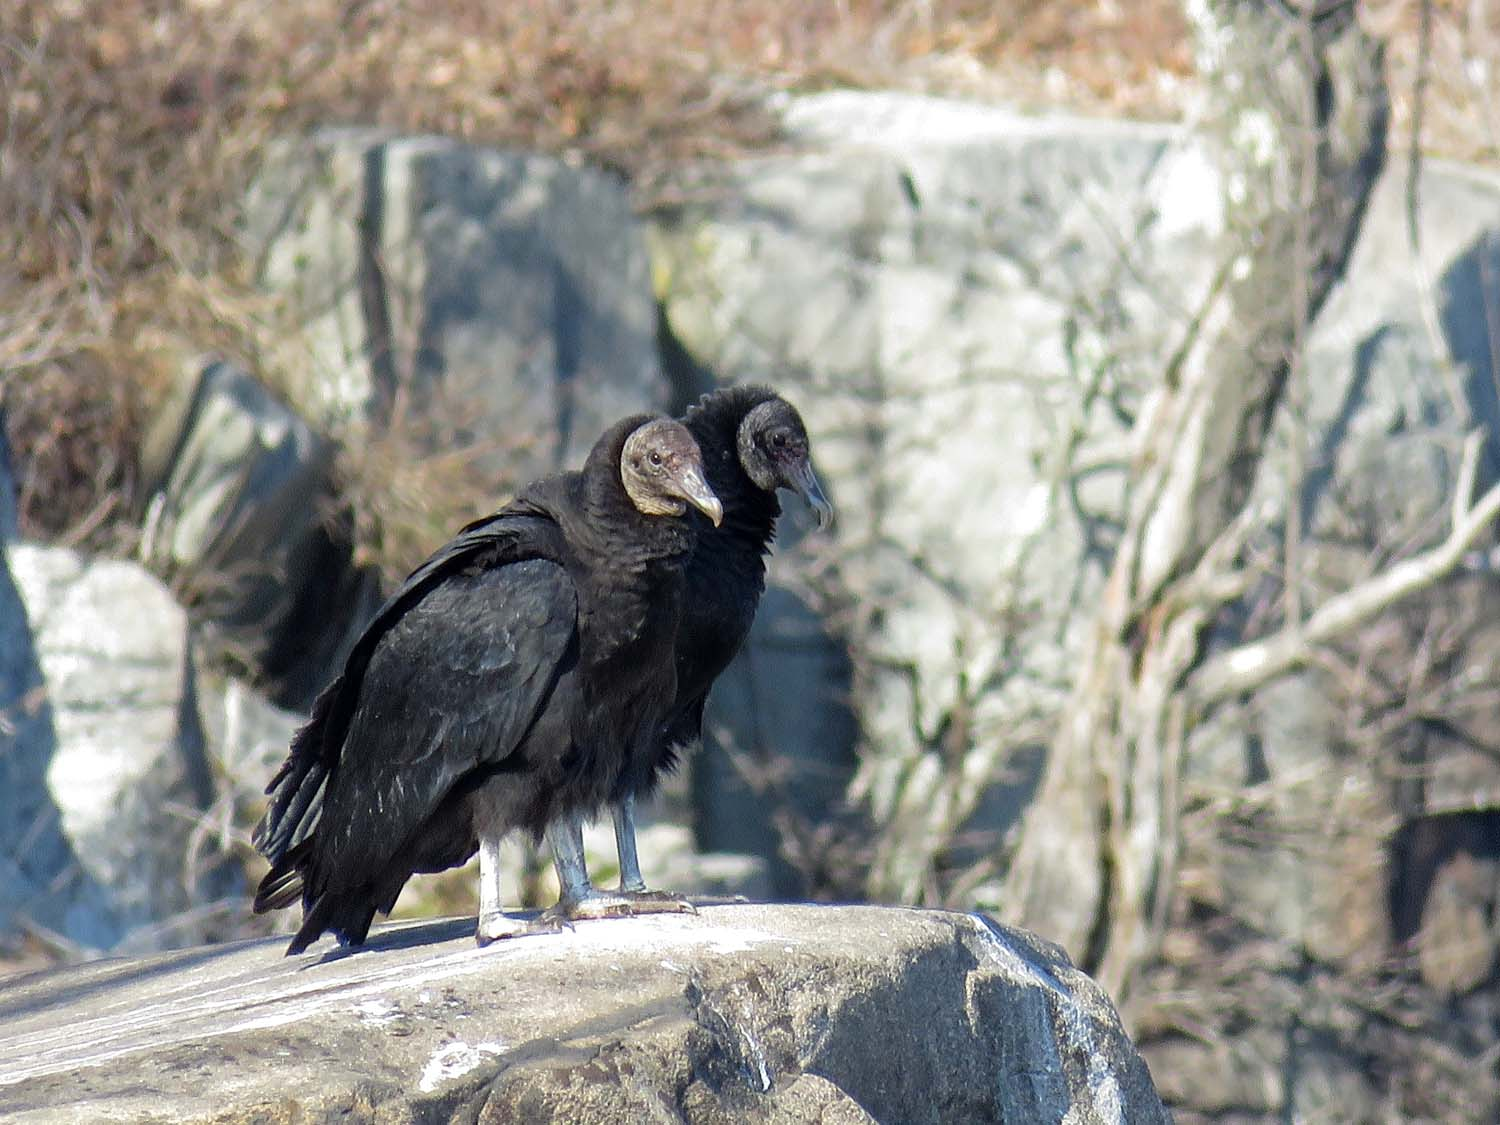 Black vultures, State Line Lookout, Palisades Interstate Park, March 6, 2018